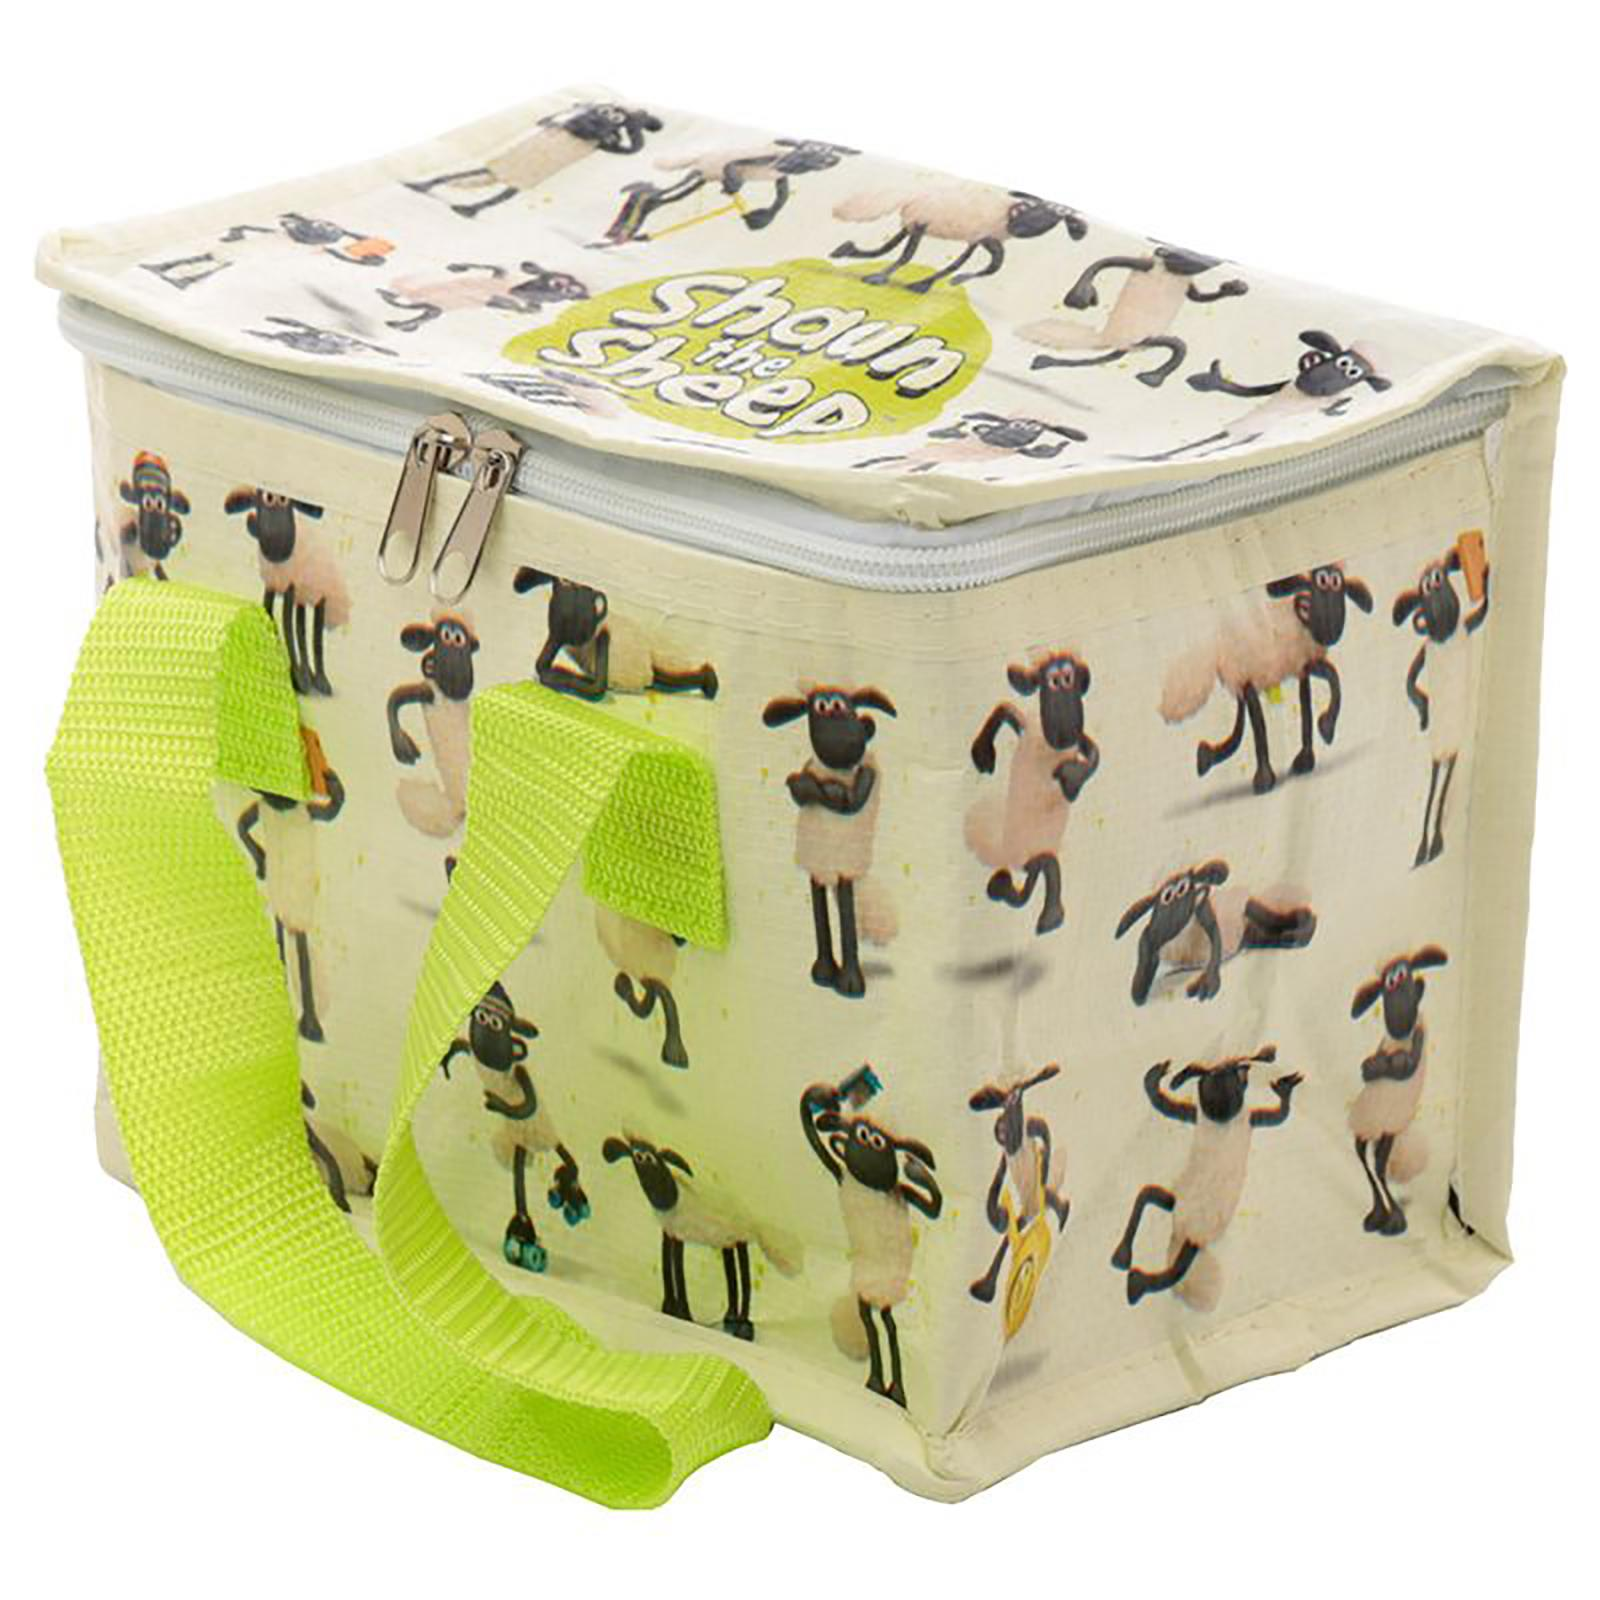 Cool-Bag-School-Picnic-Lunch-Box-Insulated-Small-Thermal-Cooler-Novelty-5-Litre miniatura 105